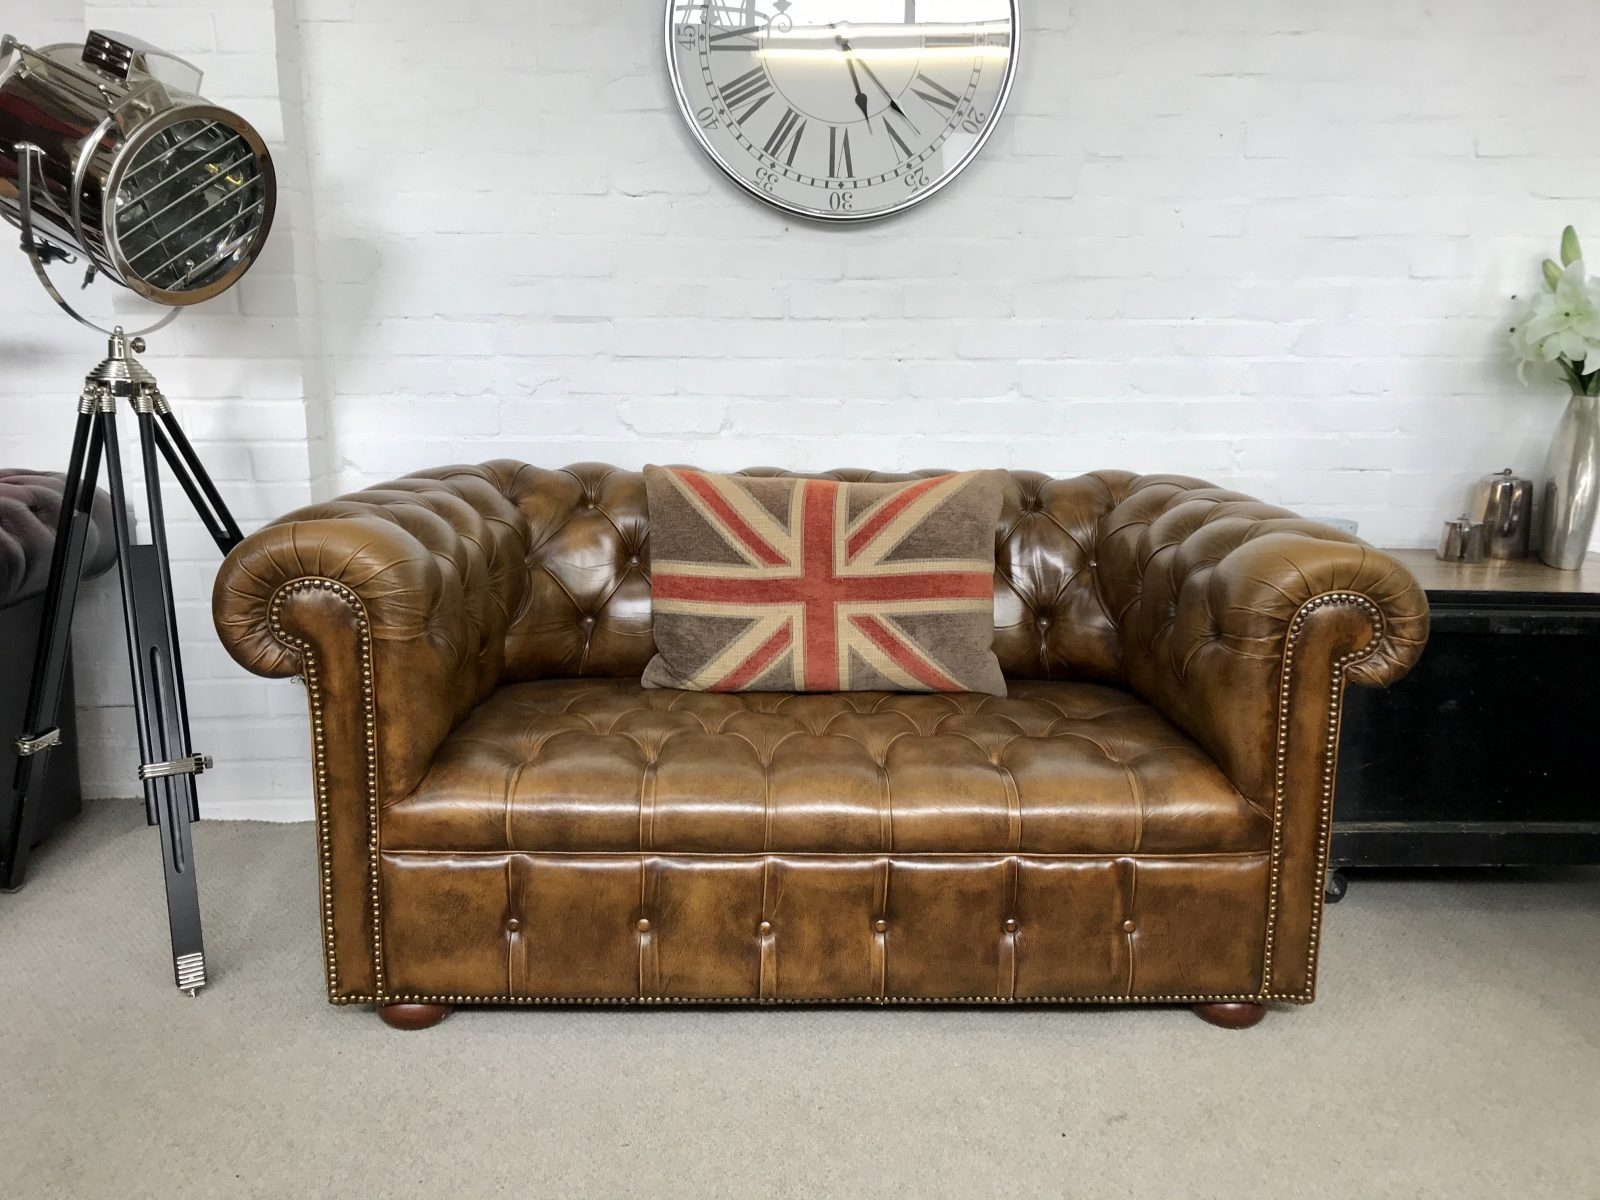 Stunning Golden Tan 2 Seater Chesterfield Sofa.( Matching 3 Seater Available)